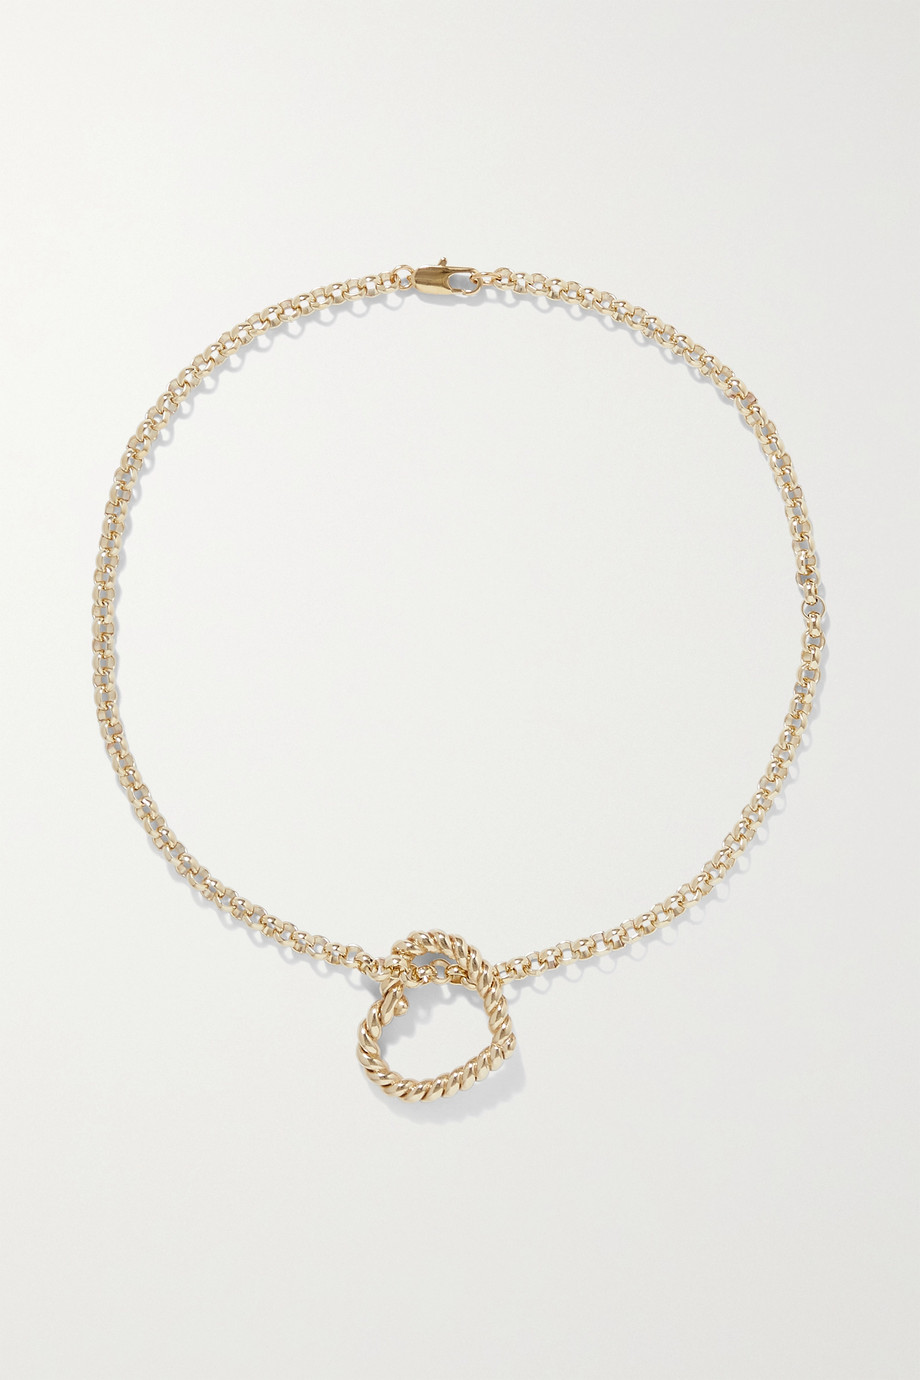 LAURA LOMBARDI Bambola gold-plated necklace